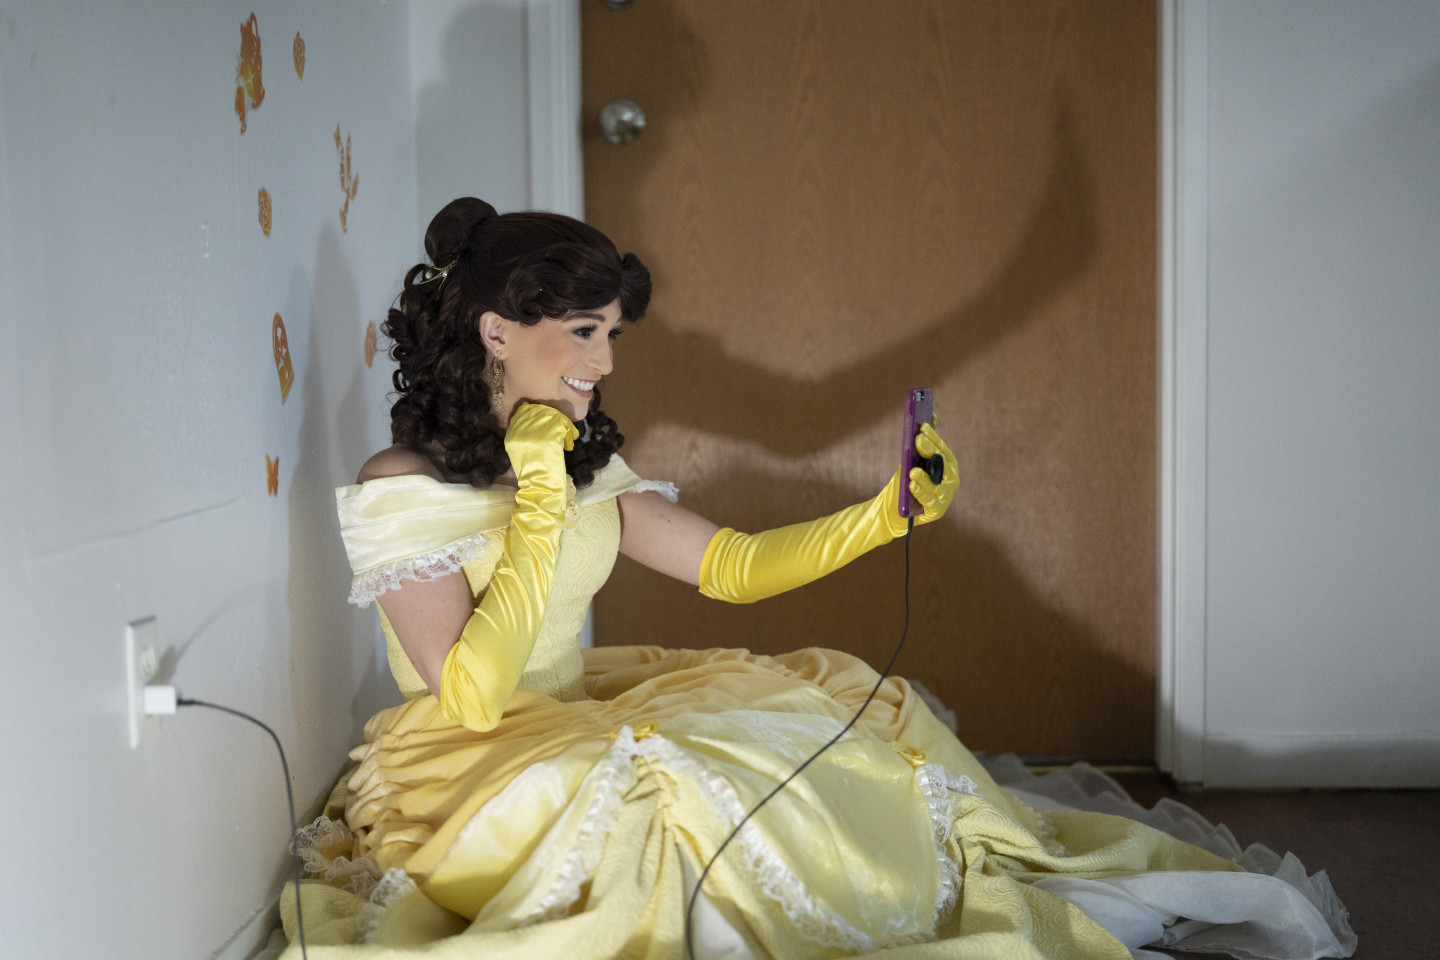 A student dressed as Belle from Beauty and the Beast smiles into her phone during a video call.